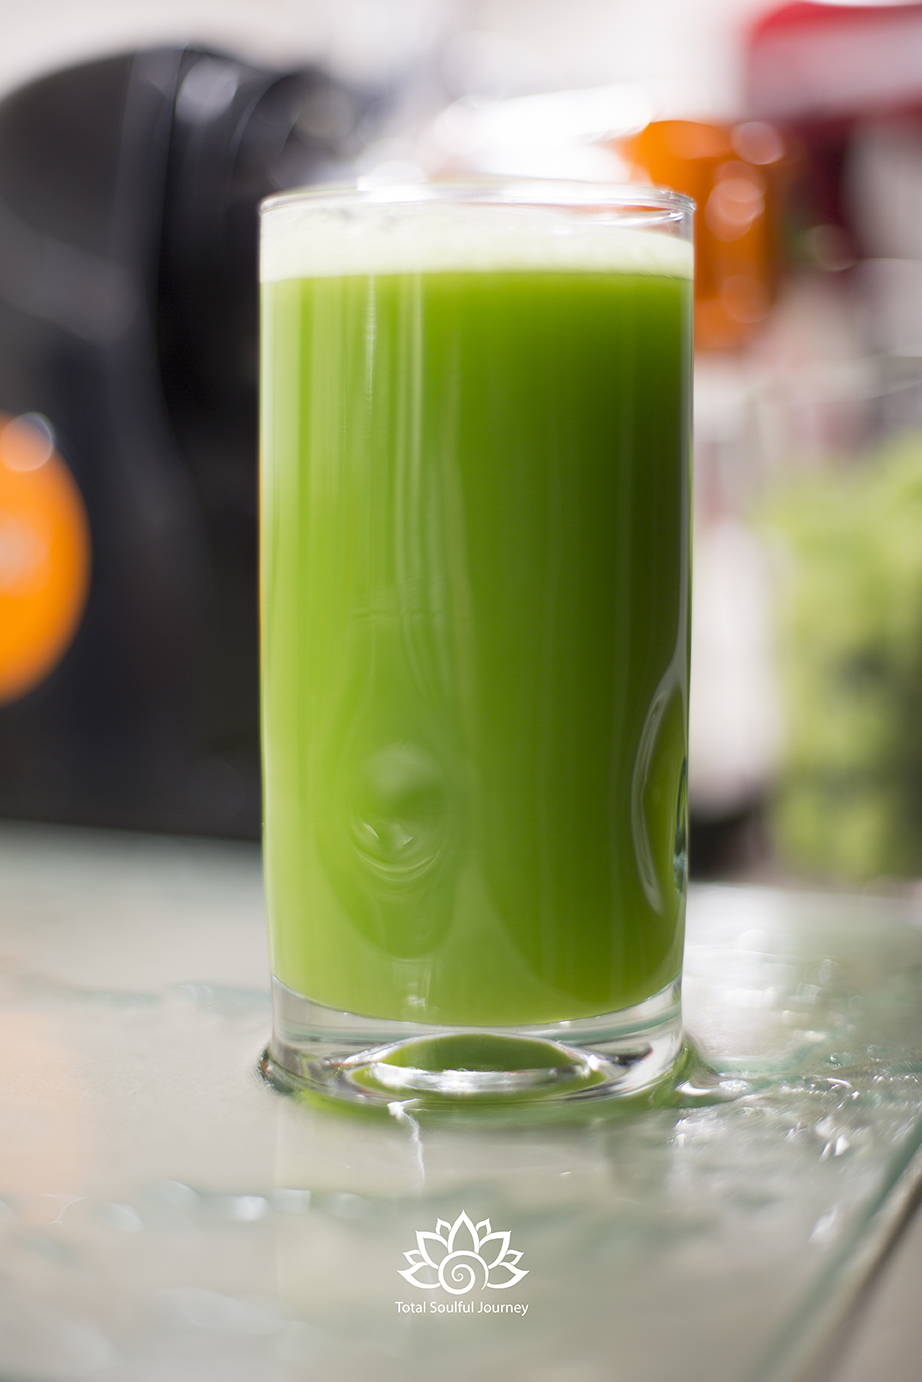 16 ounces of fresh celery juice is the perfect way to start your day! - Photography by Paul Garrett